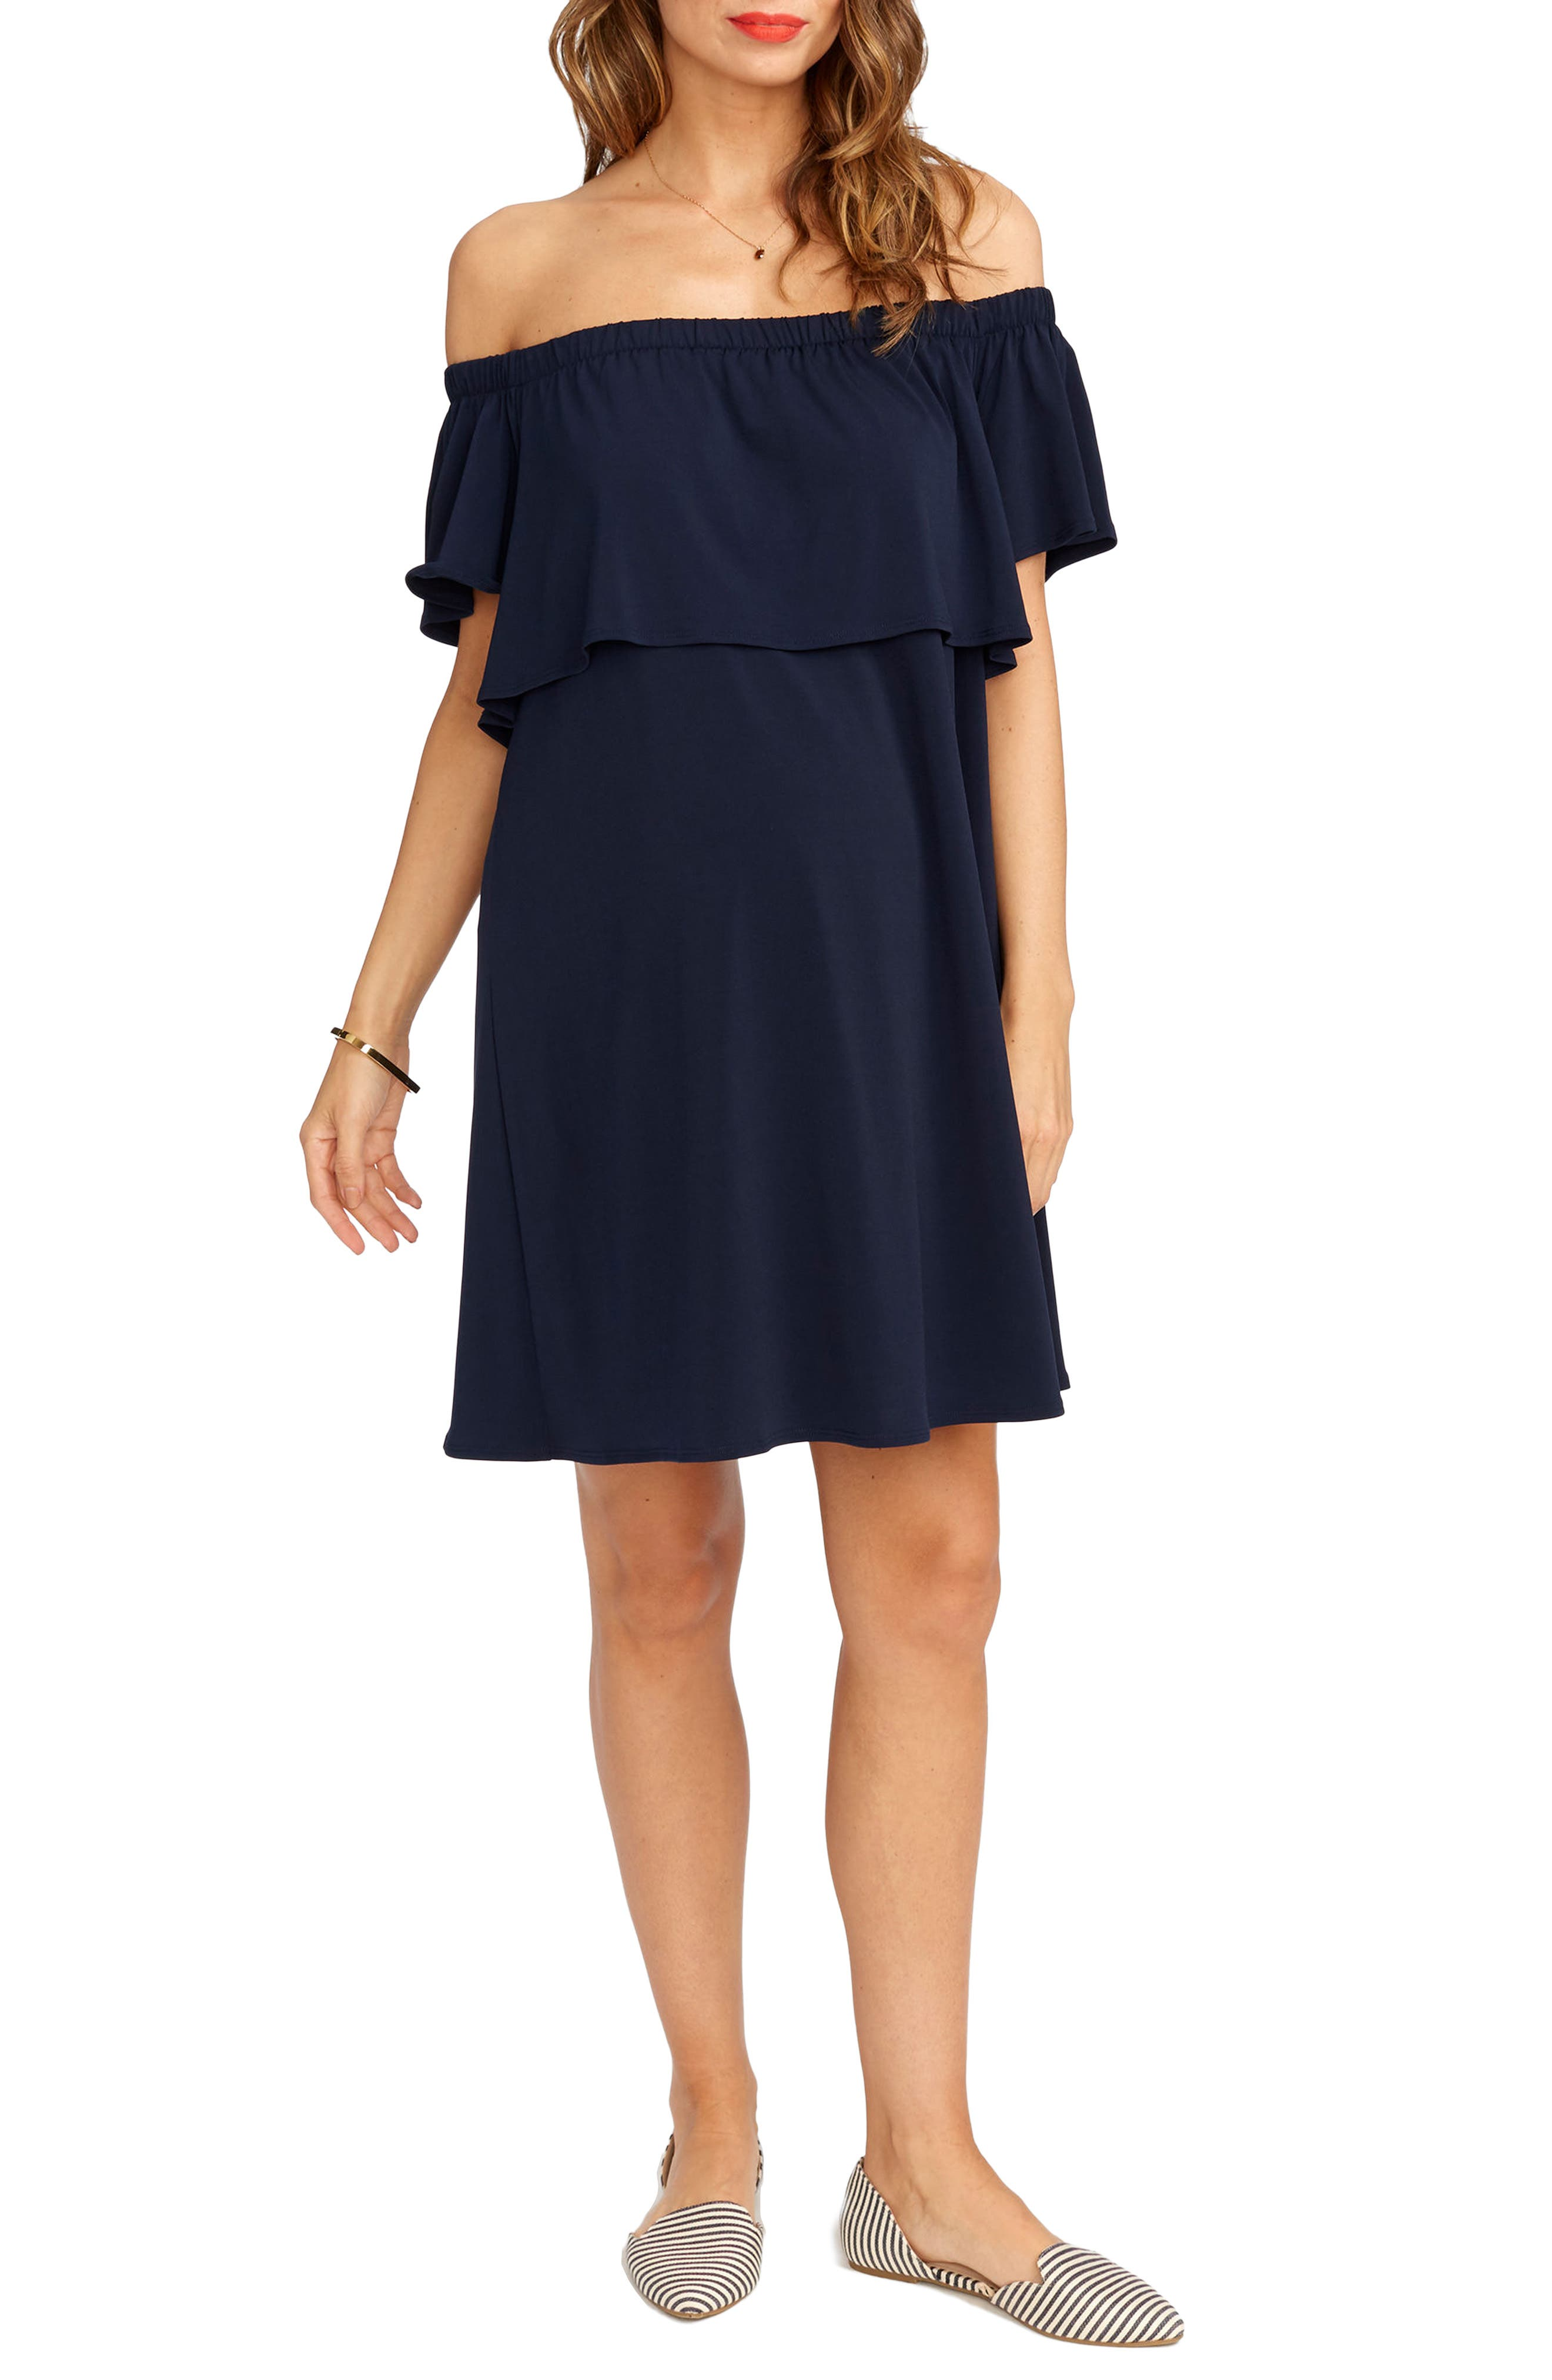 Alternate Image 1 Selected - Rosie Pope Luisa Off the Shoulder Maternity Dress